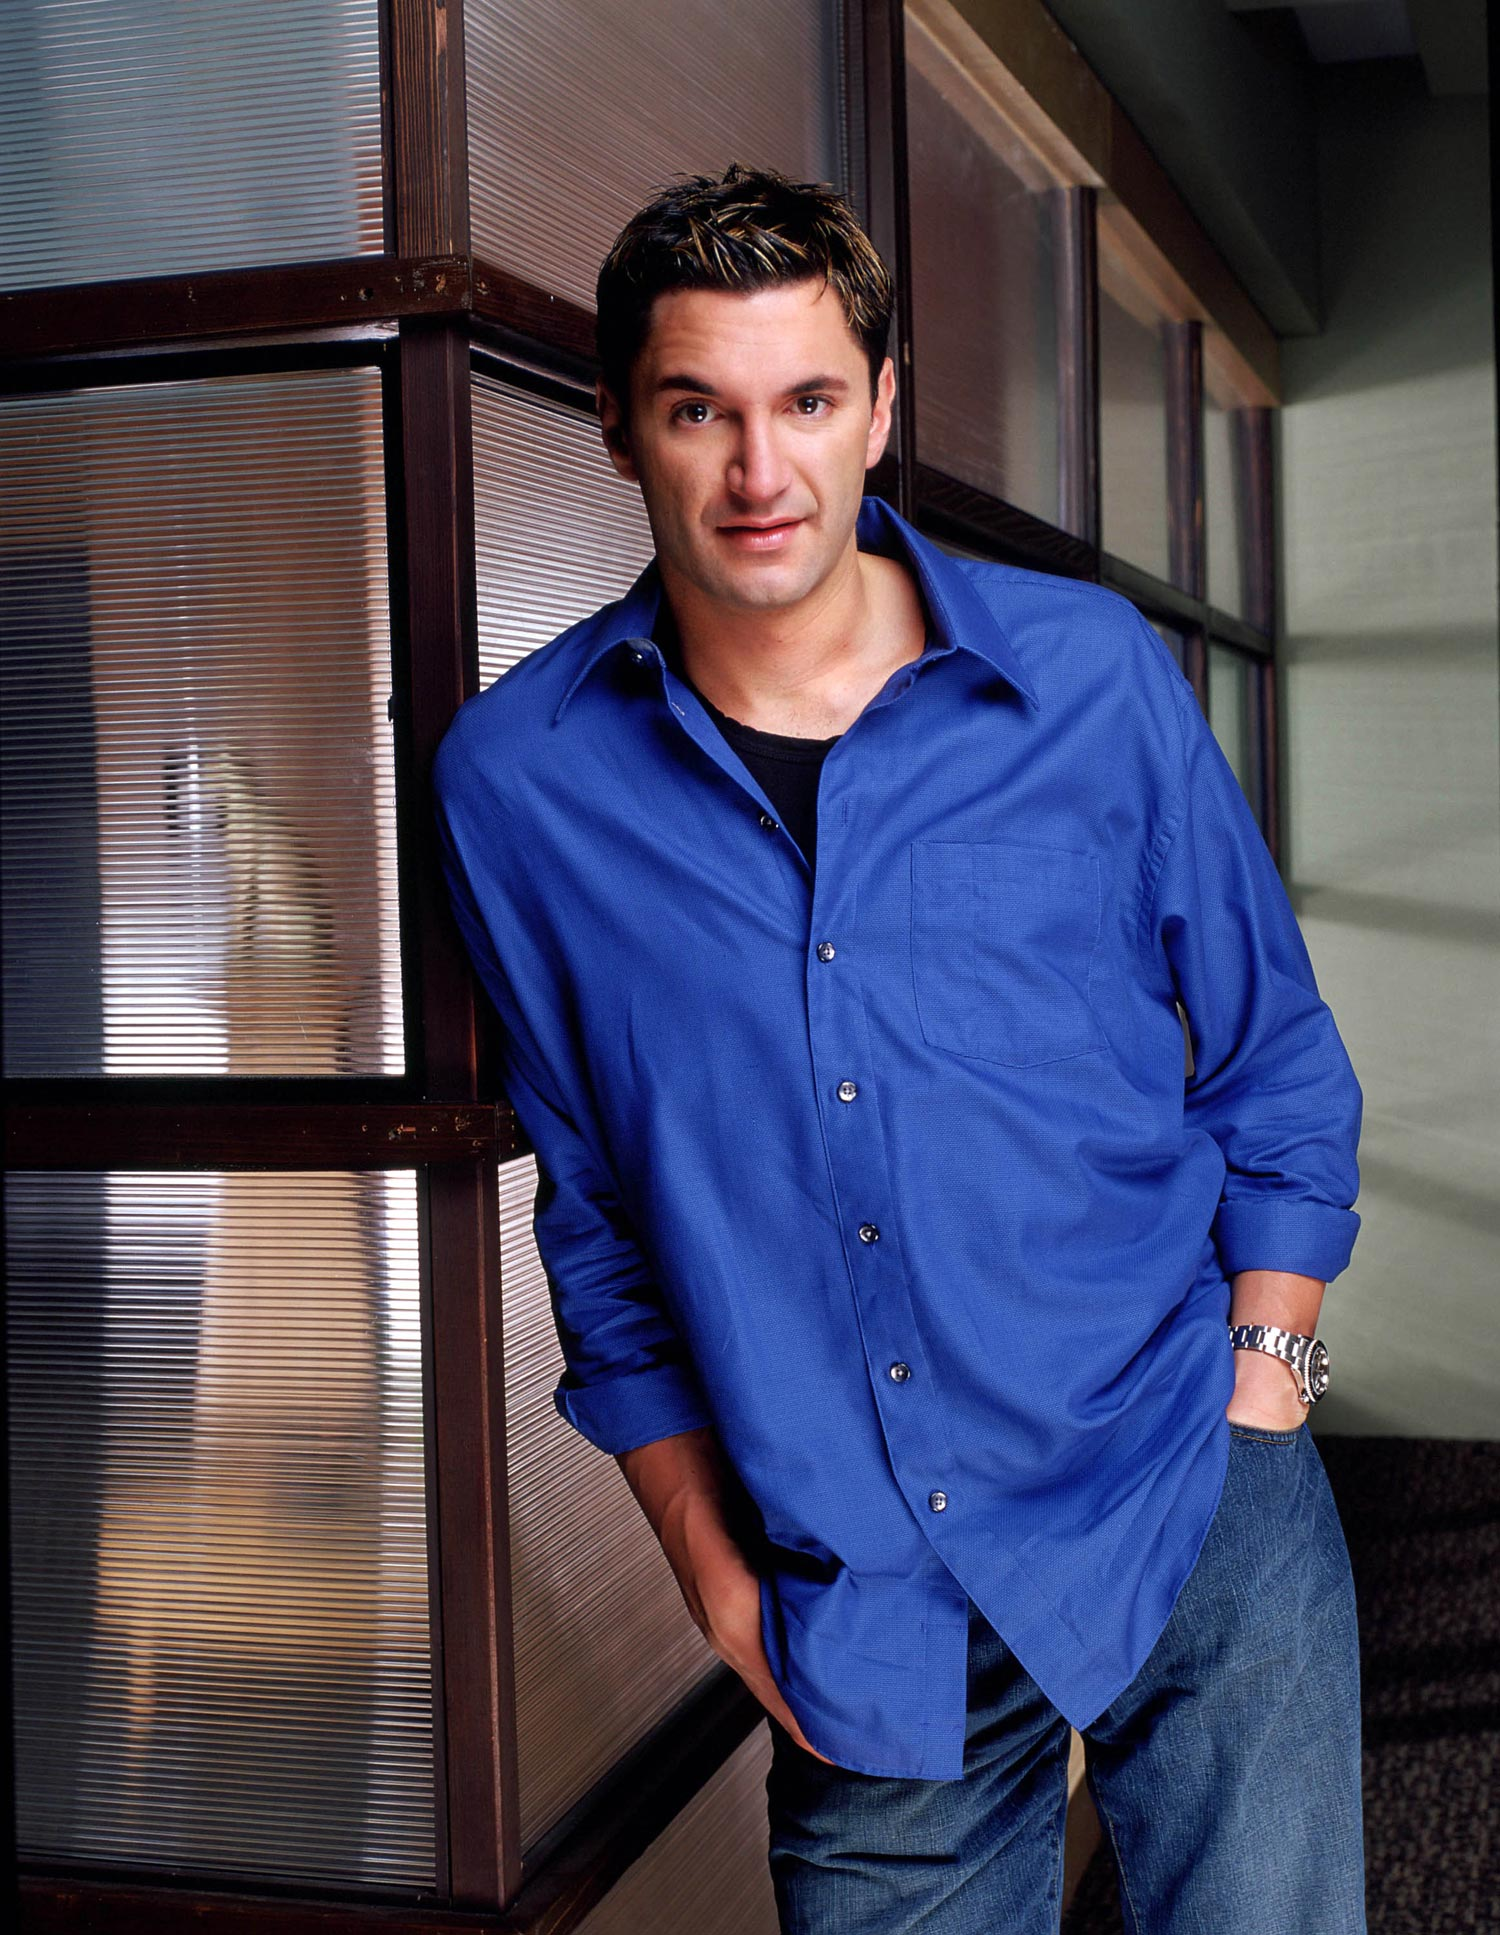 Angel Season 5 - Andy Hallett - High Quality Promotional Photos: http://www.whedon.info/Angel-Season-5-Andy-Hallet-High.html